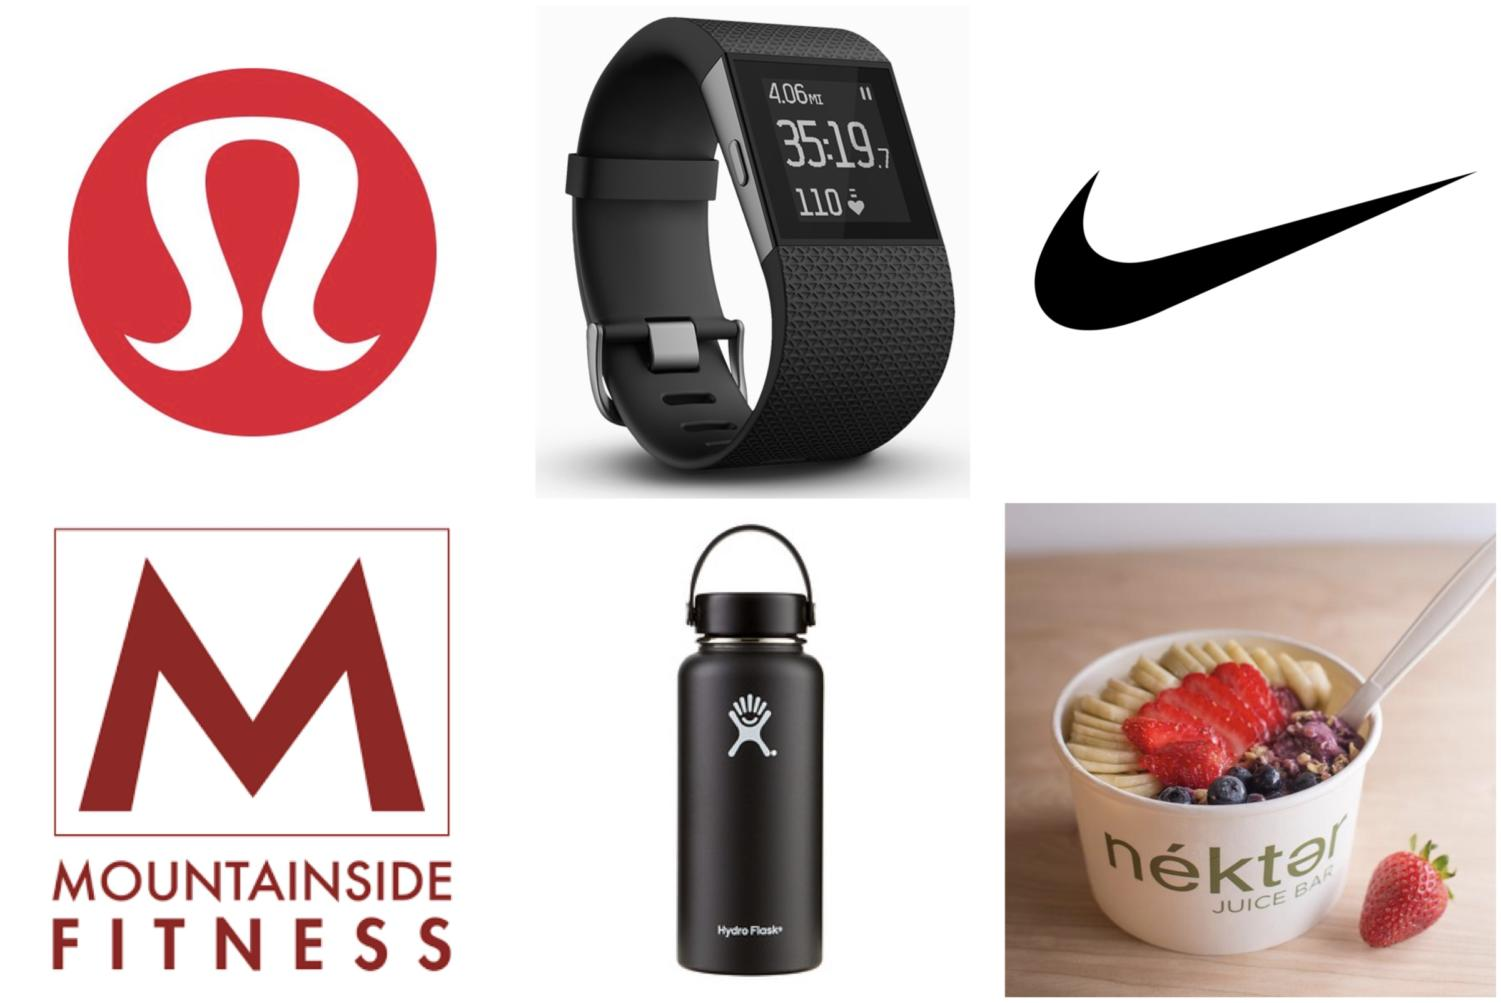 Here are a few of the mentioned fitness-related gifts that are great for anyone.